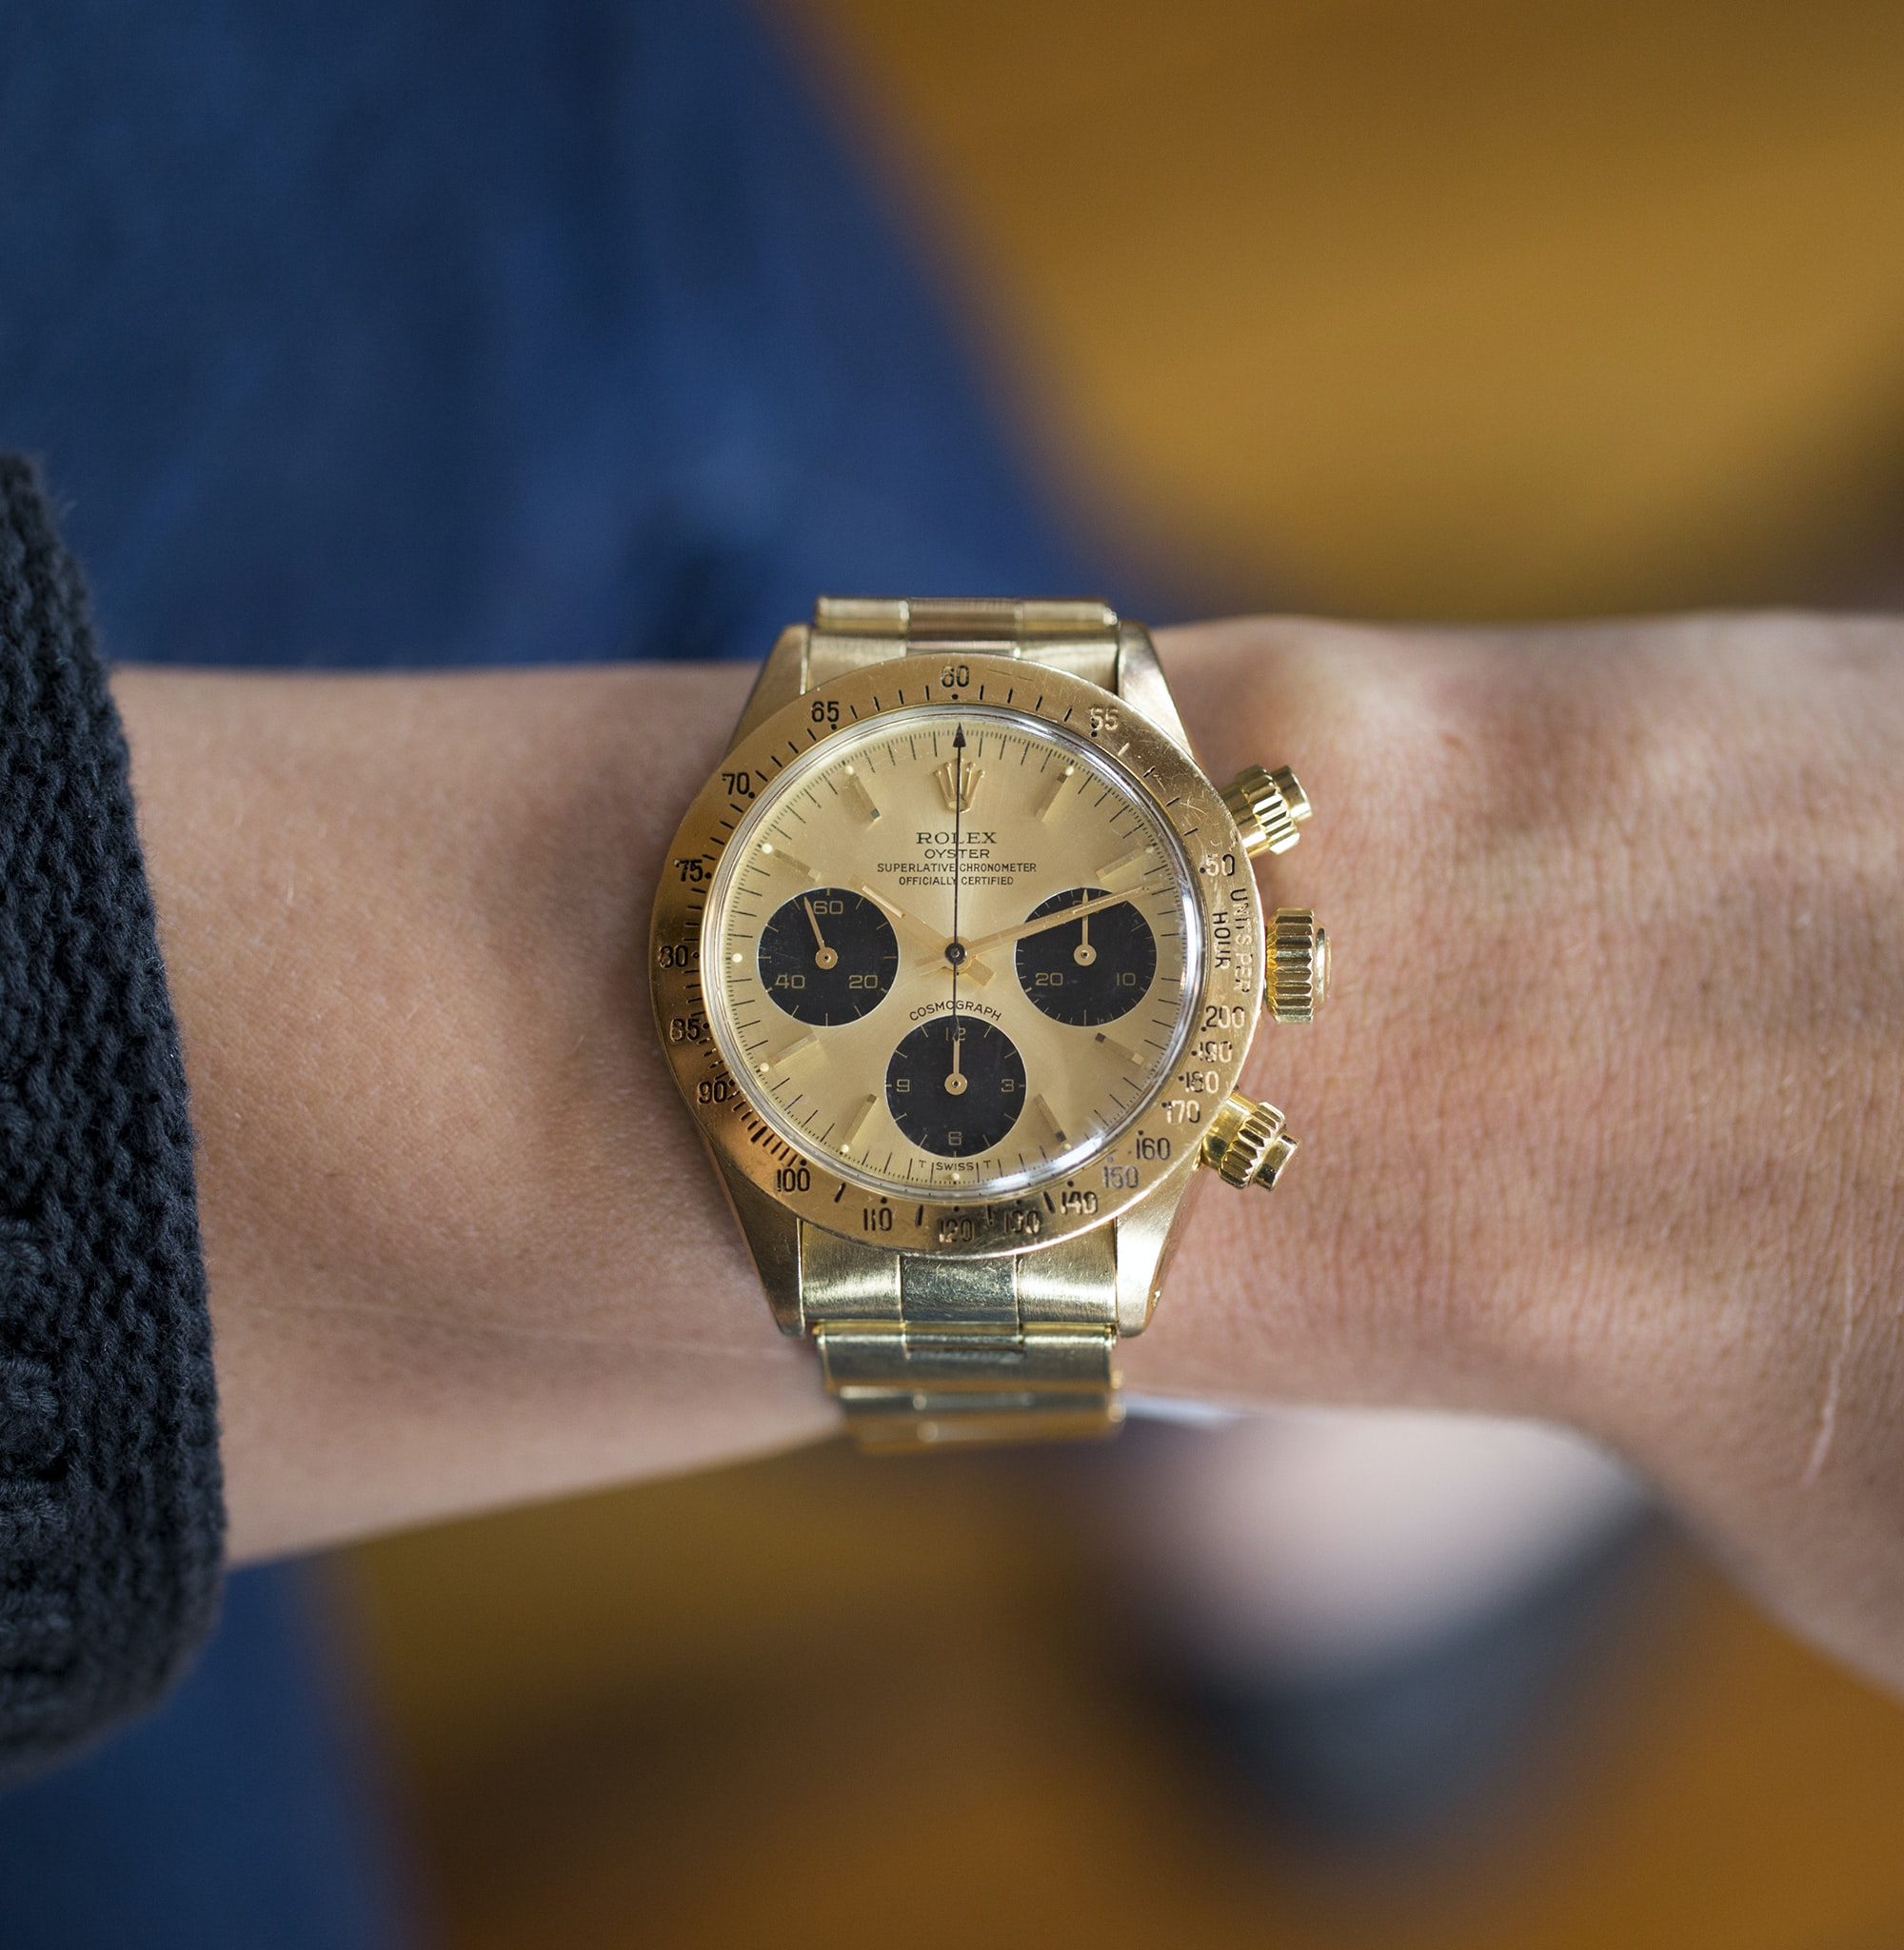 Rolex Daytona Reference 6265 In The Shop: A 1978 Rolex Daytona Ref. 6265 In 14K Yellow Gold, A 1960s Heuer Carrera Ref. 3647N, And A 1940s Universal Genve Compax In The Shop: A 1978 Rolex Daytona Ref. 6265 In 14K Yellow Gold, A 1960s Heuer Carrera Ref. 3647N, And A 1940s Universal Genve Compax 20012035 copy